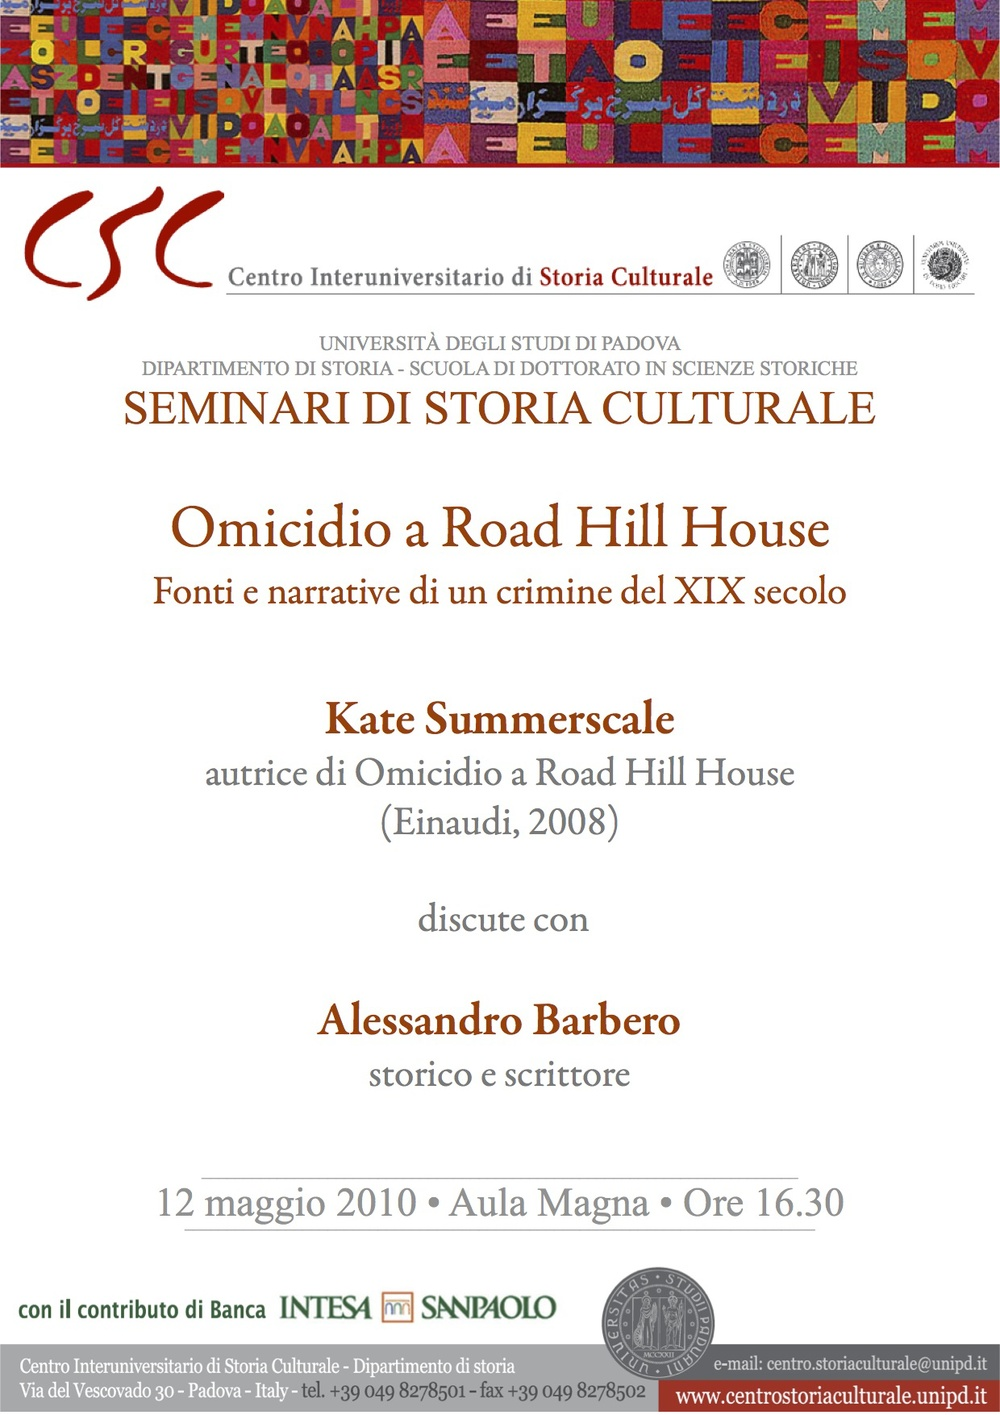 2010-05 (PD) Omicidio a Road Hill House.jpg